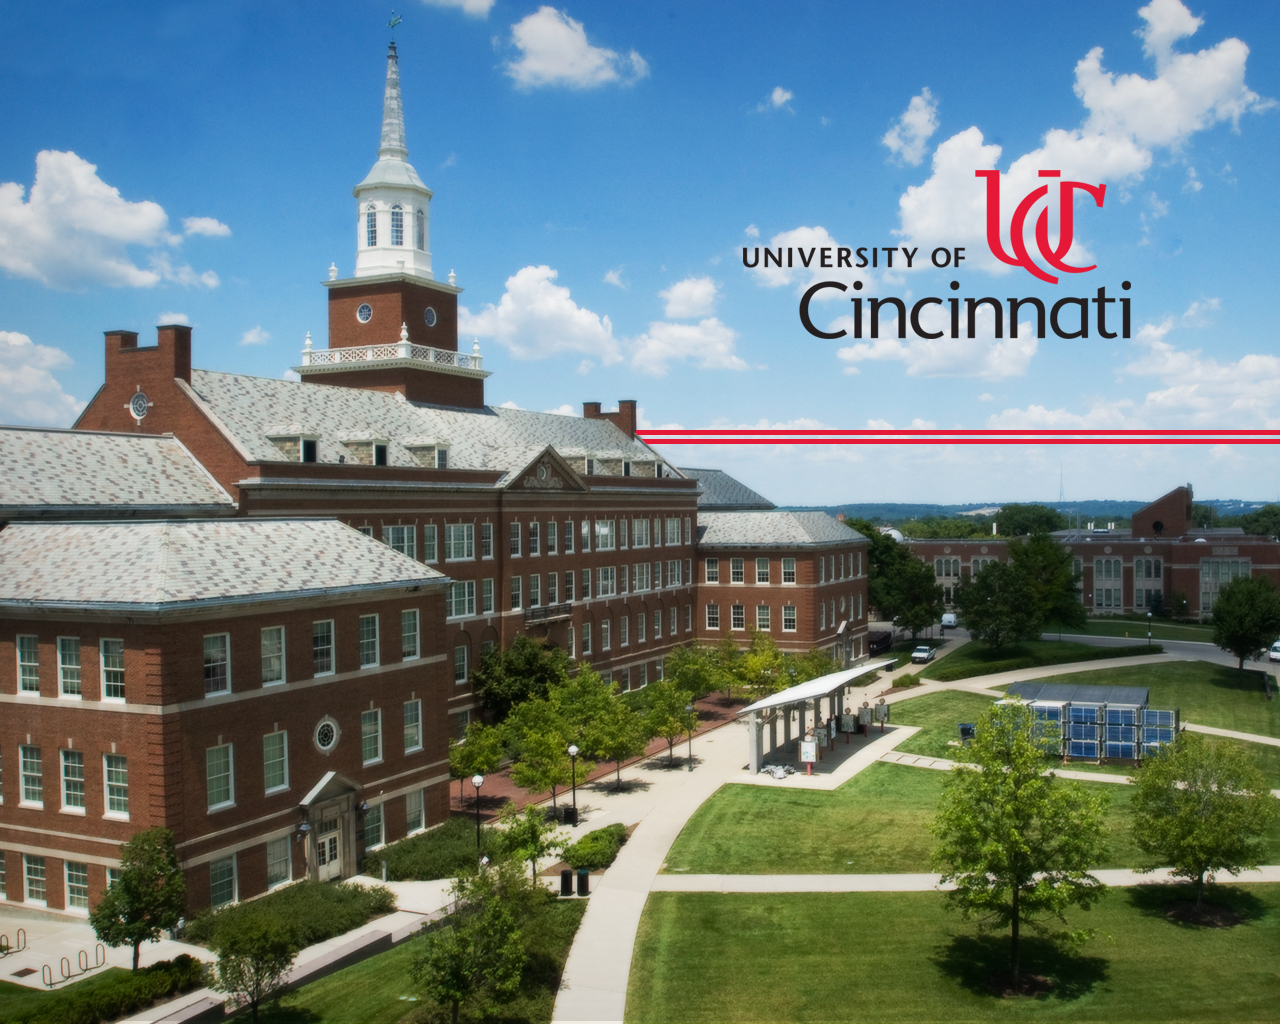 University Of Cincinnati  College Of Law  Llm Guide. Sault Ste Marie Car Dealers Sydney To Palau. Property Management Tools For Landlords. Same Sex Marriage And Civil Rights. Finding A Financial Planner Pest Control Usa. Sales Pipeline Spreadsheet Hair Club Seattle. How To Get A Loan For Investment Property. Comcast Capital Corporation Clean Cut Movers. What Is Bioidentical Hormone Replacement Therapy